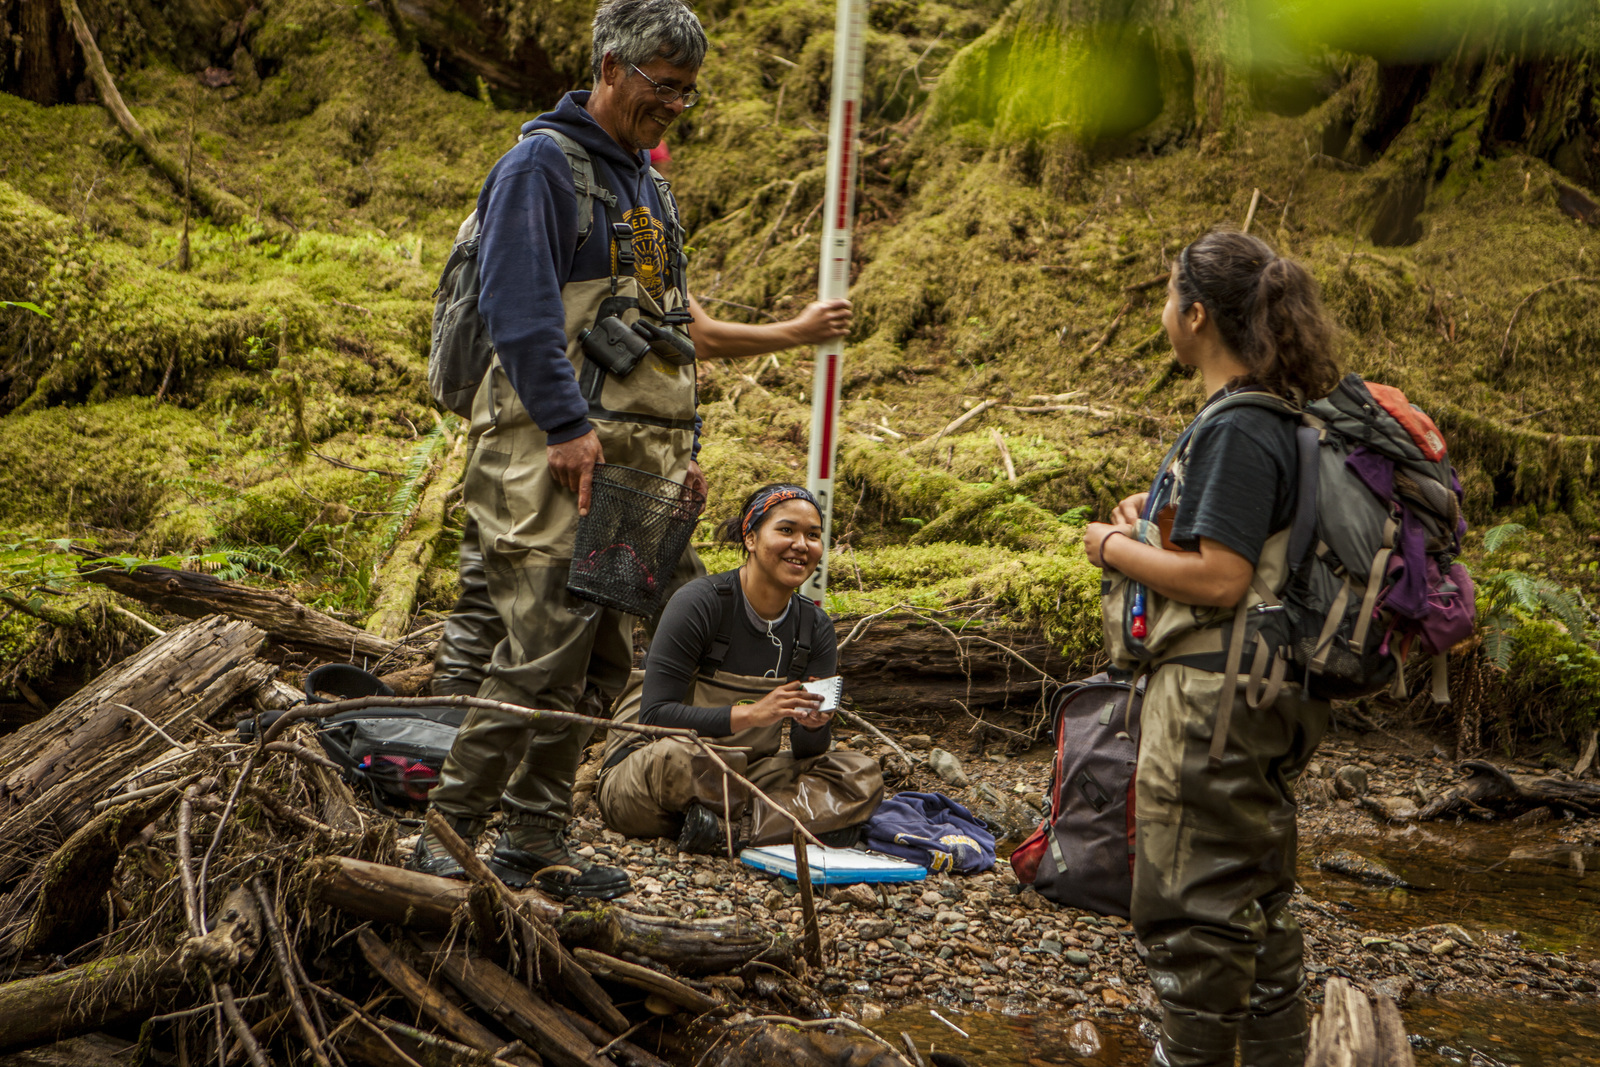 Members of the Haida tribe perform fish surveys on streams at Keat's Inlet on Prince of Wales Island.Photo credit: © Erika Nortemann/TNC